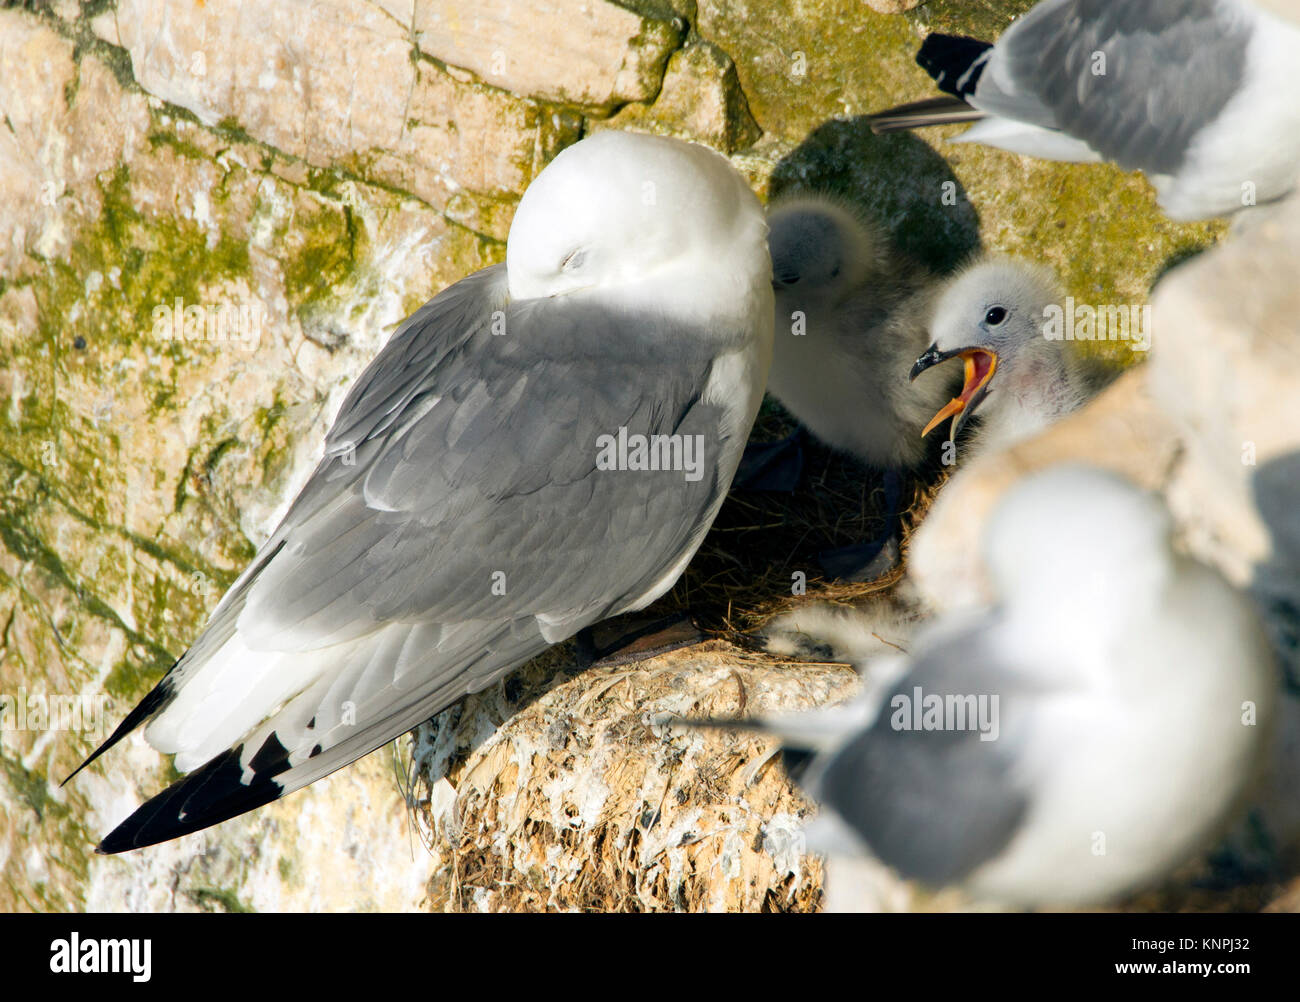 Kittiwake (Rissa tridactyla) with chicks in the nest. now listed as Vulnerable on the IUCN Red List © Ben Andrew - Stock Image